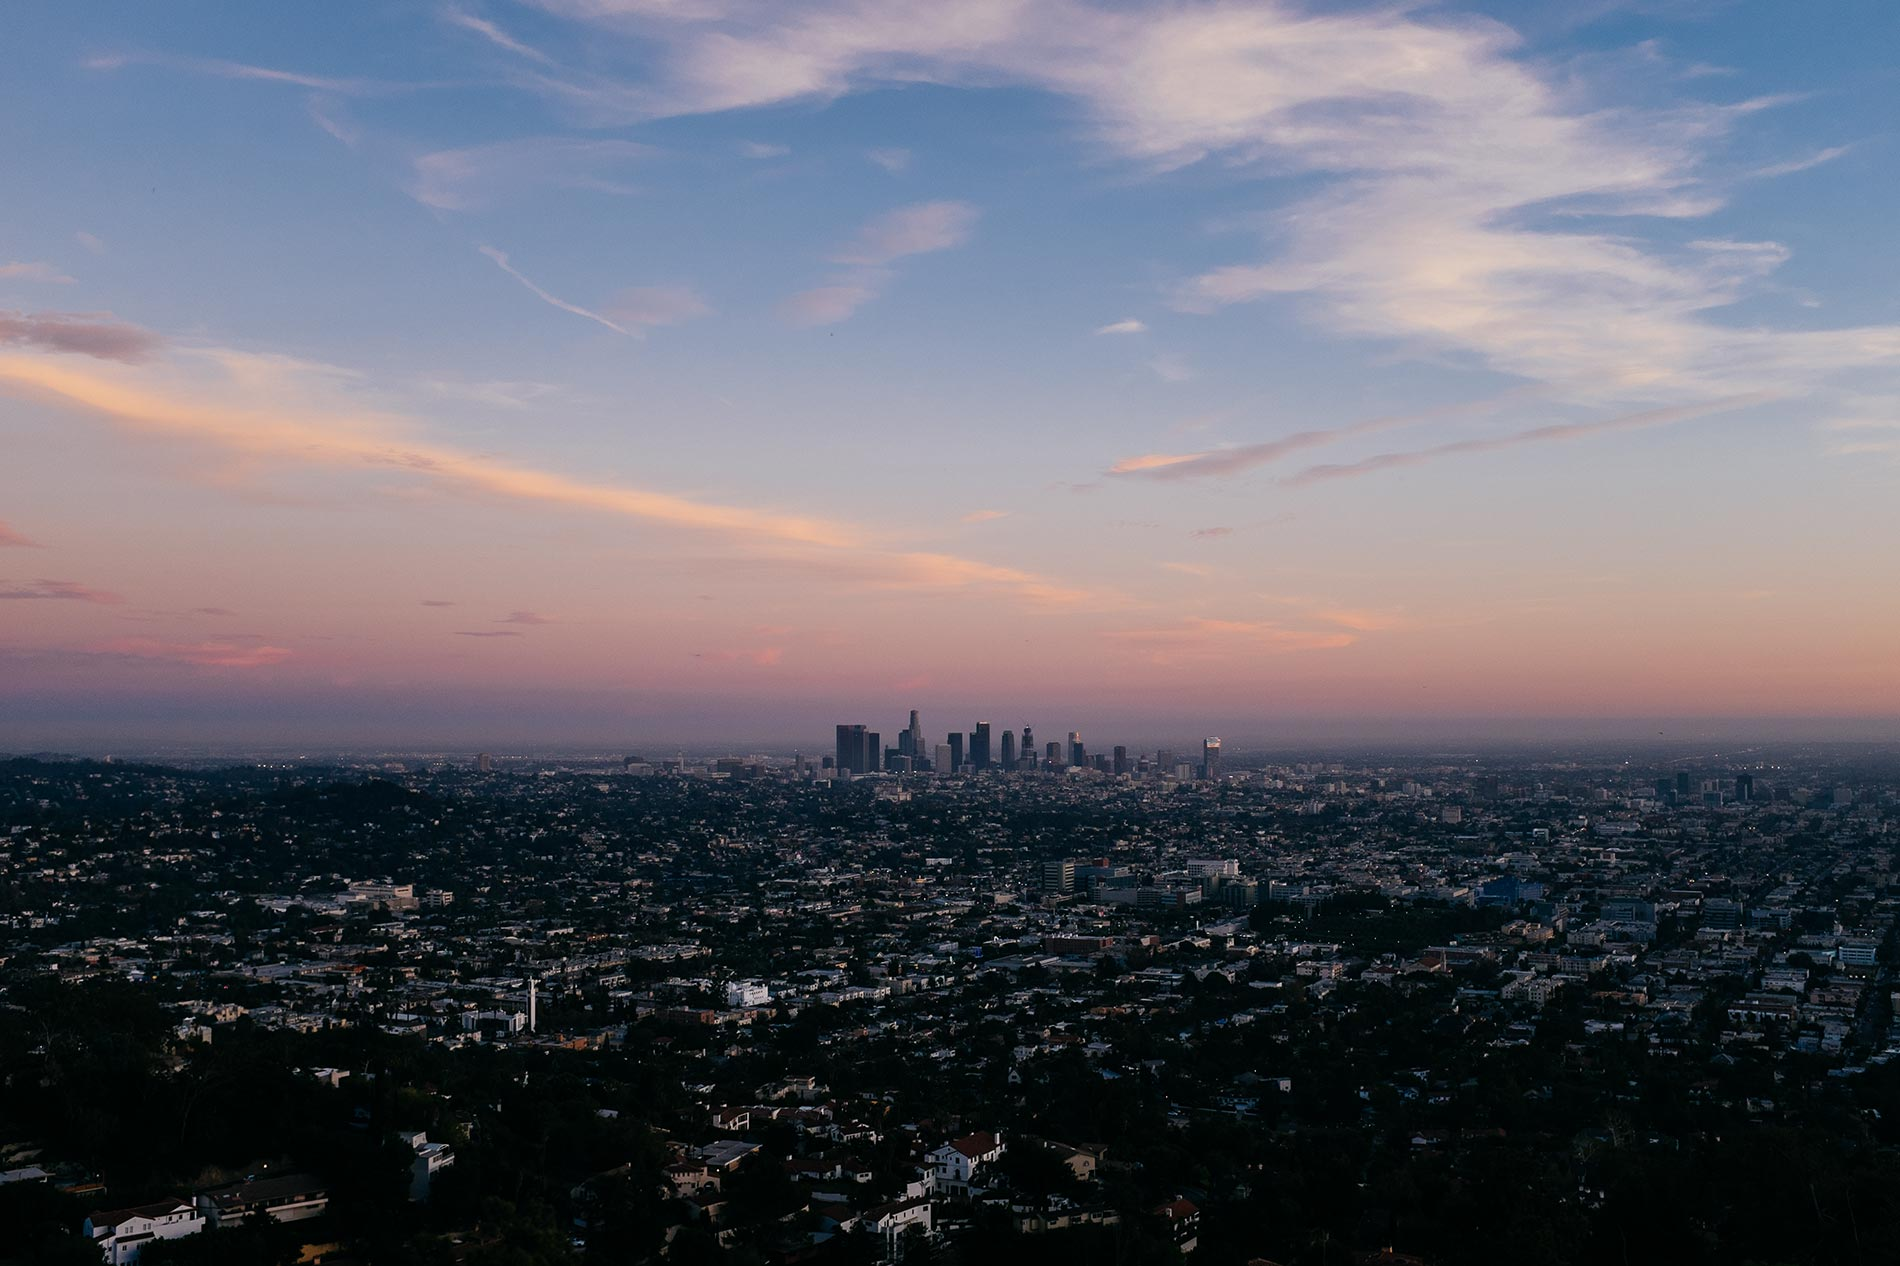 Griffith Observatory @ Los Angeles, California - October 2015